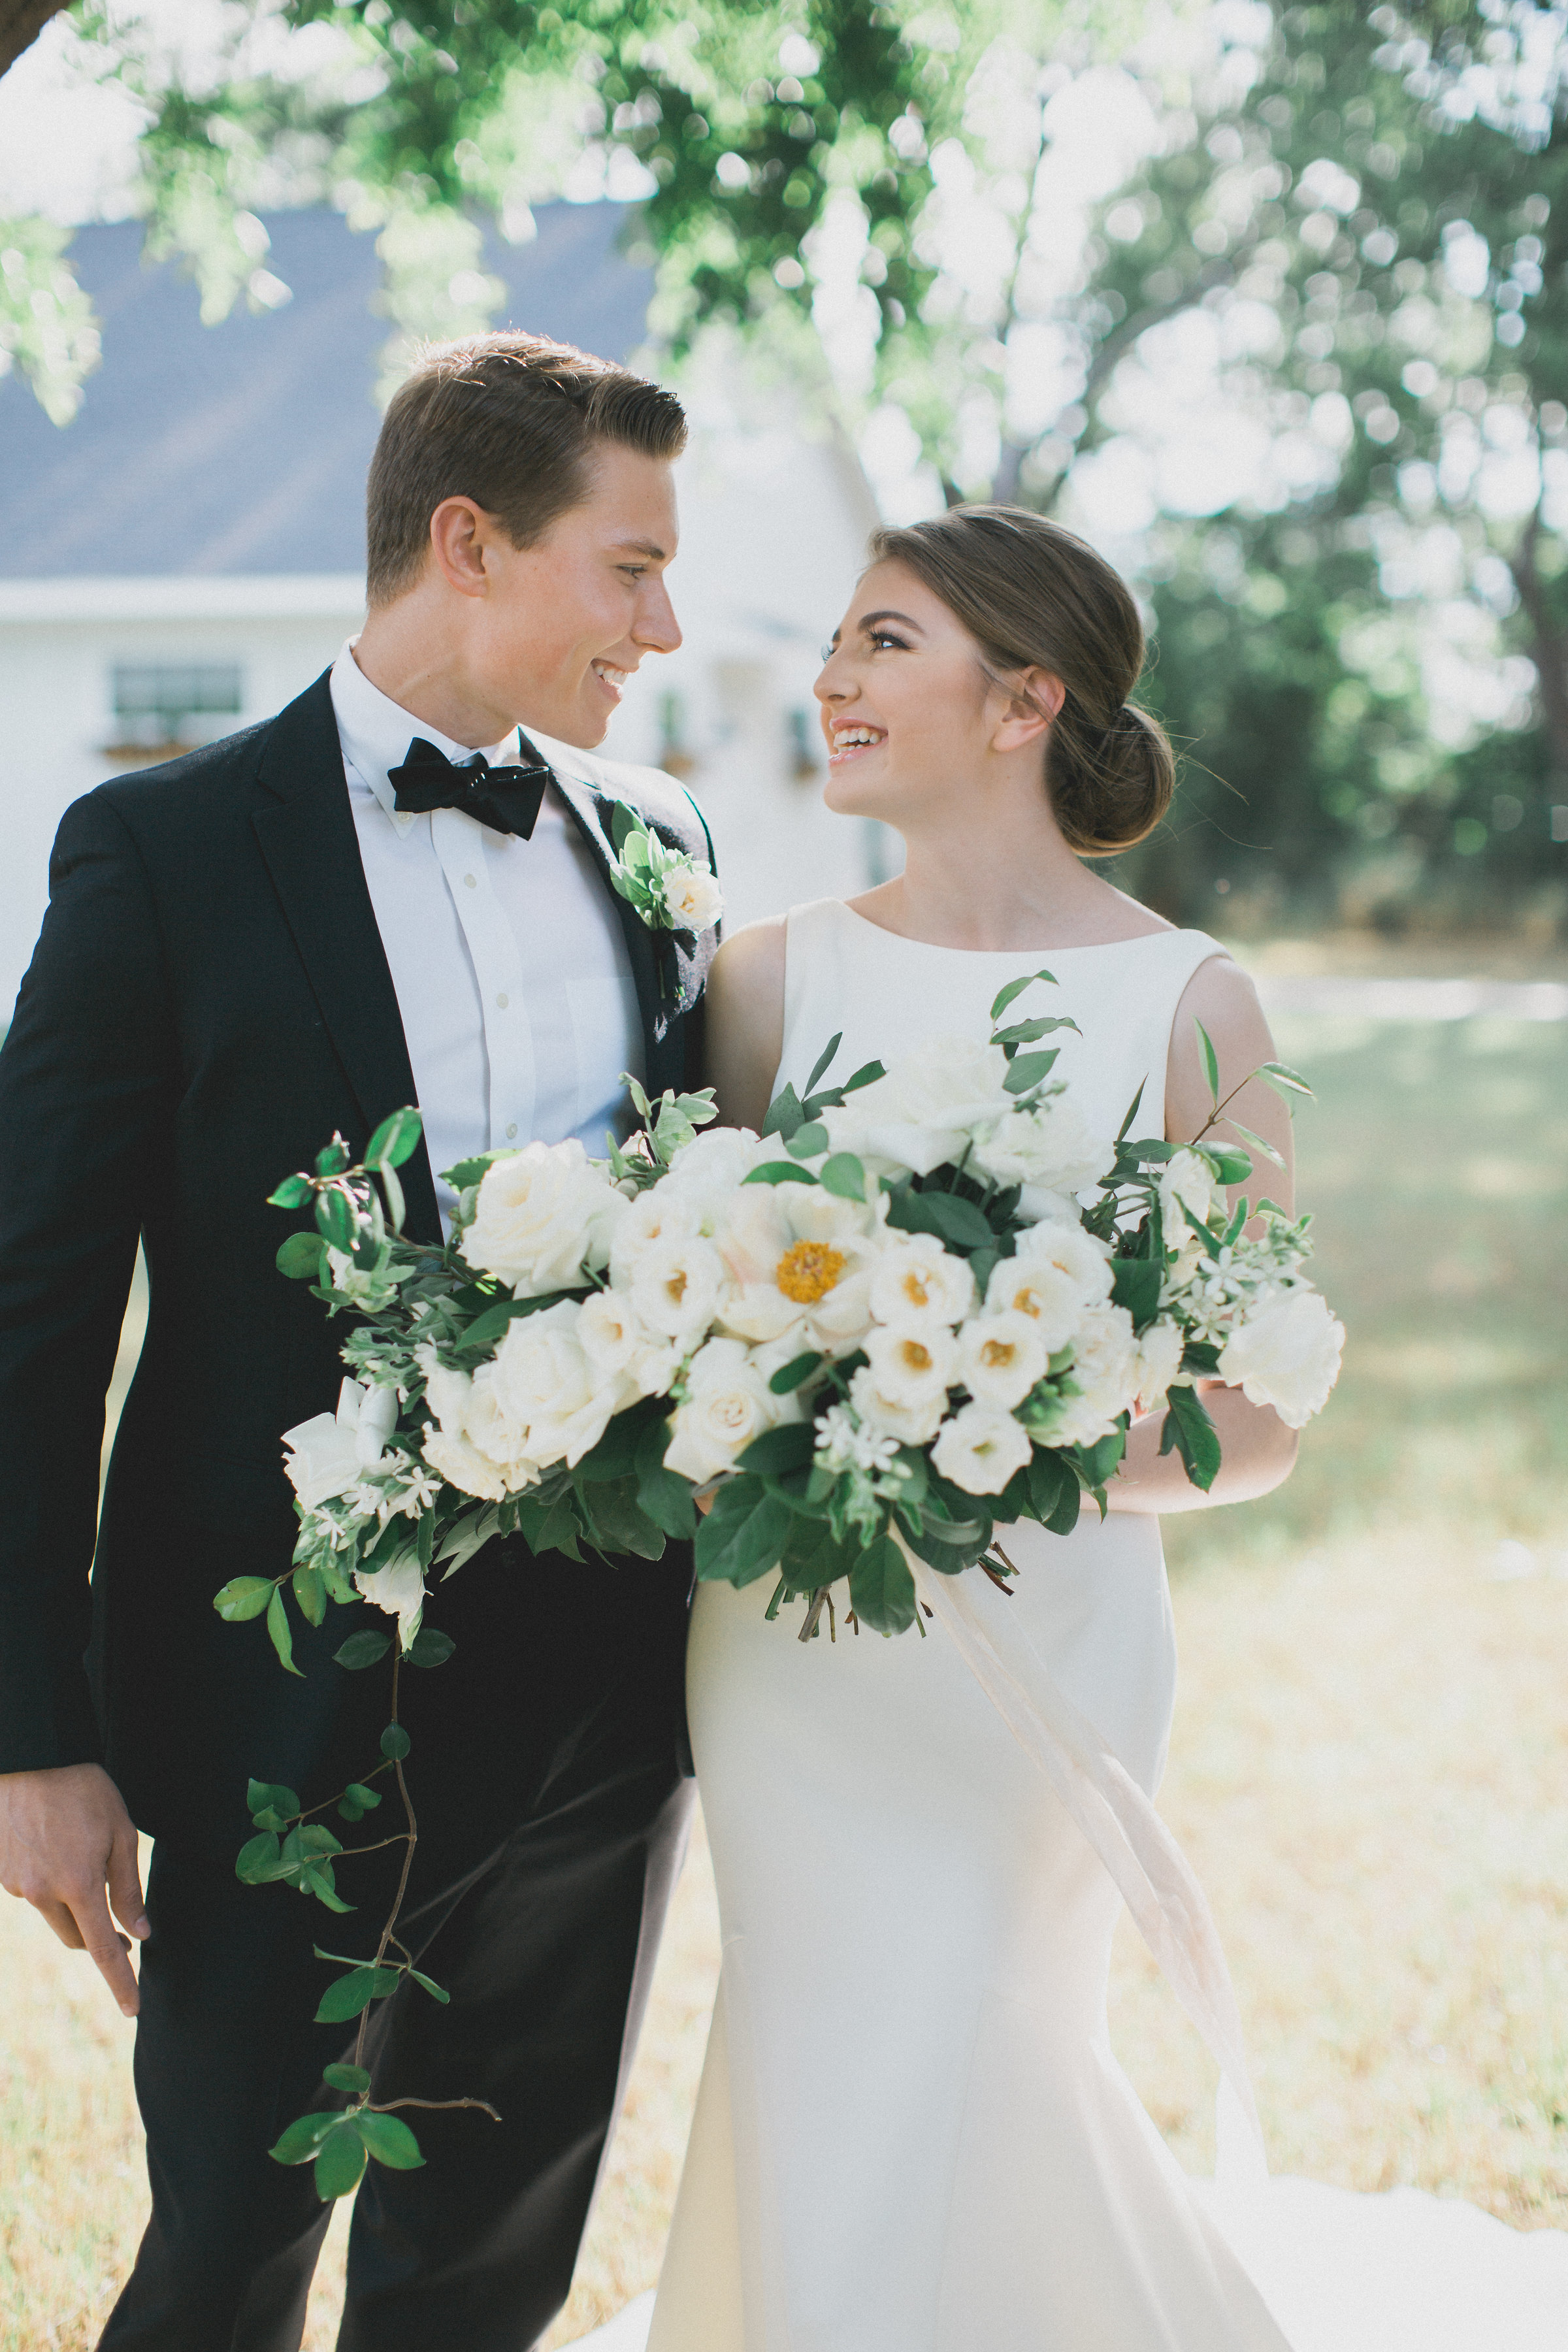 Bride and Groom Portraits | Southern Summer White Barn Wedding in Dallas, TX